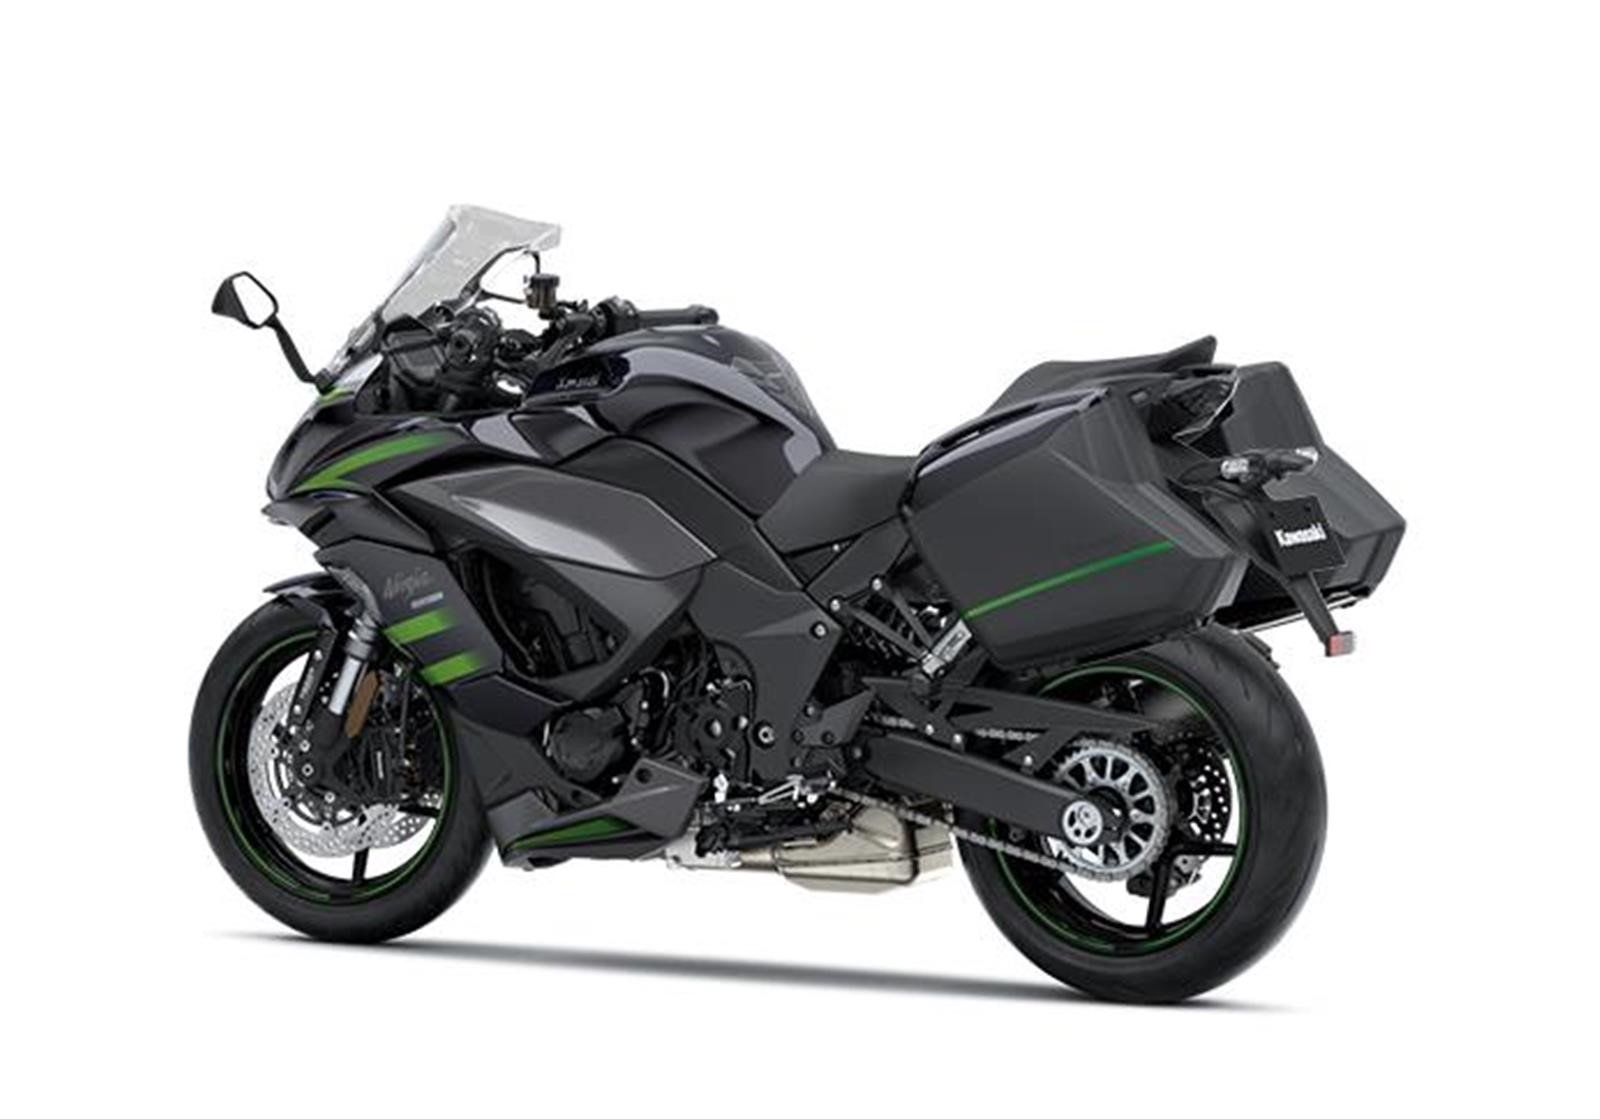 New 2020 Kawasaki Ninja 1000 SX SE Tourer**FREE DELIVERY** For Sale (picture 3 of 6)